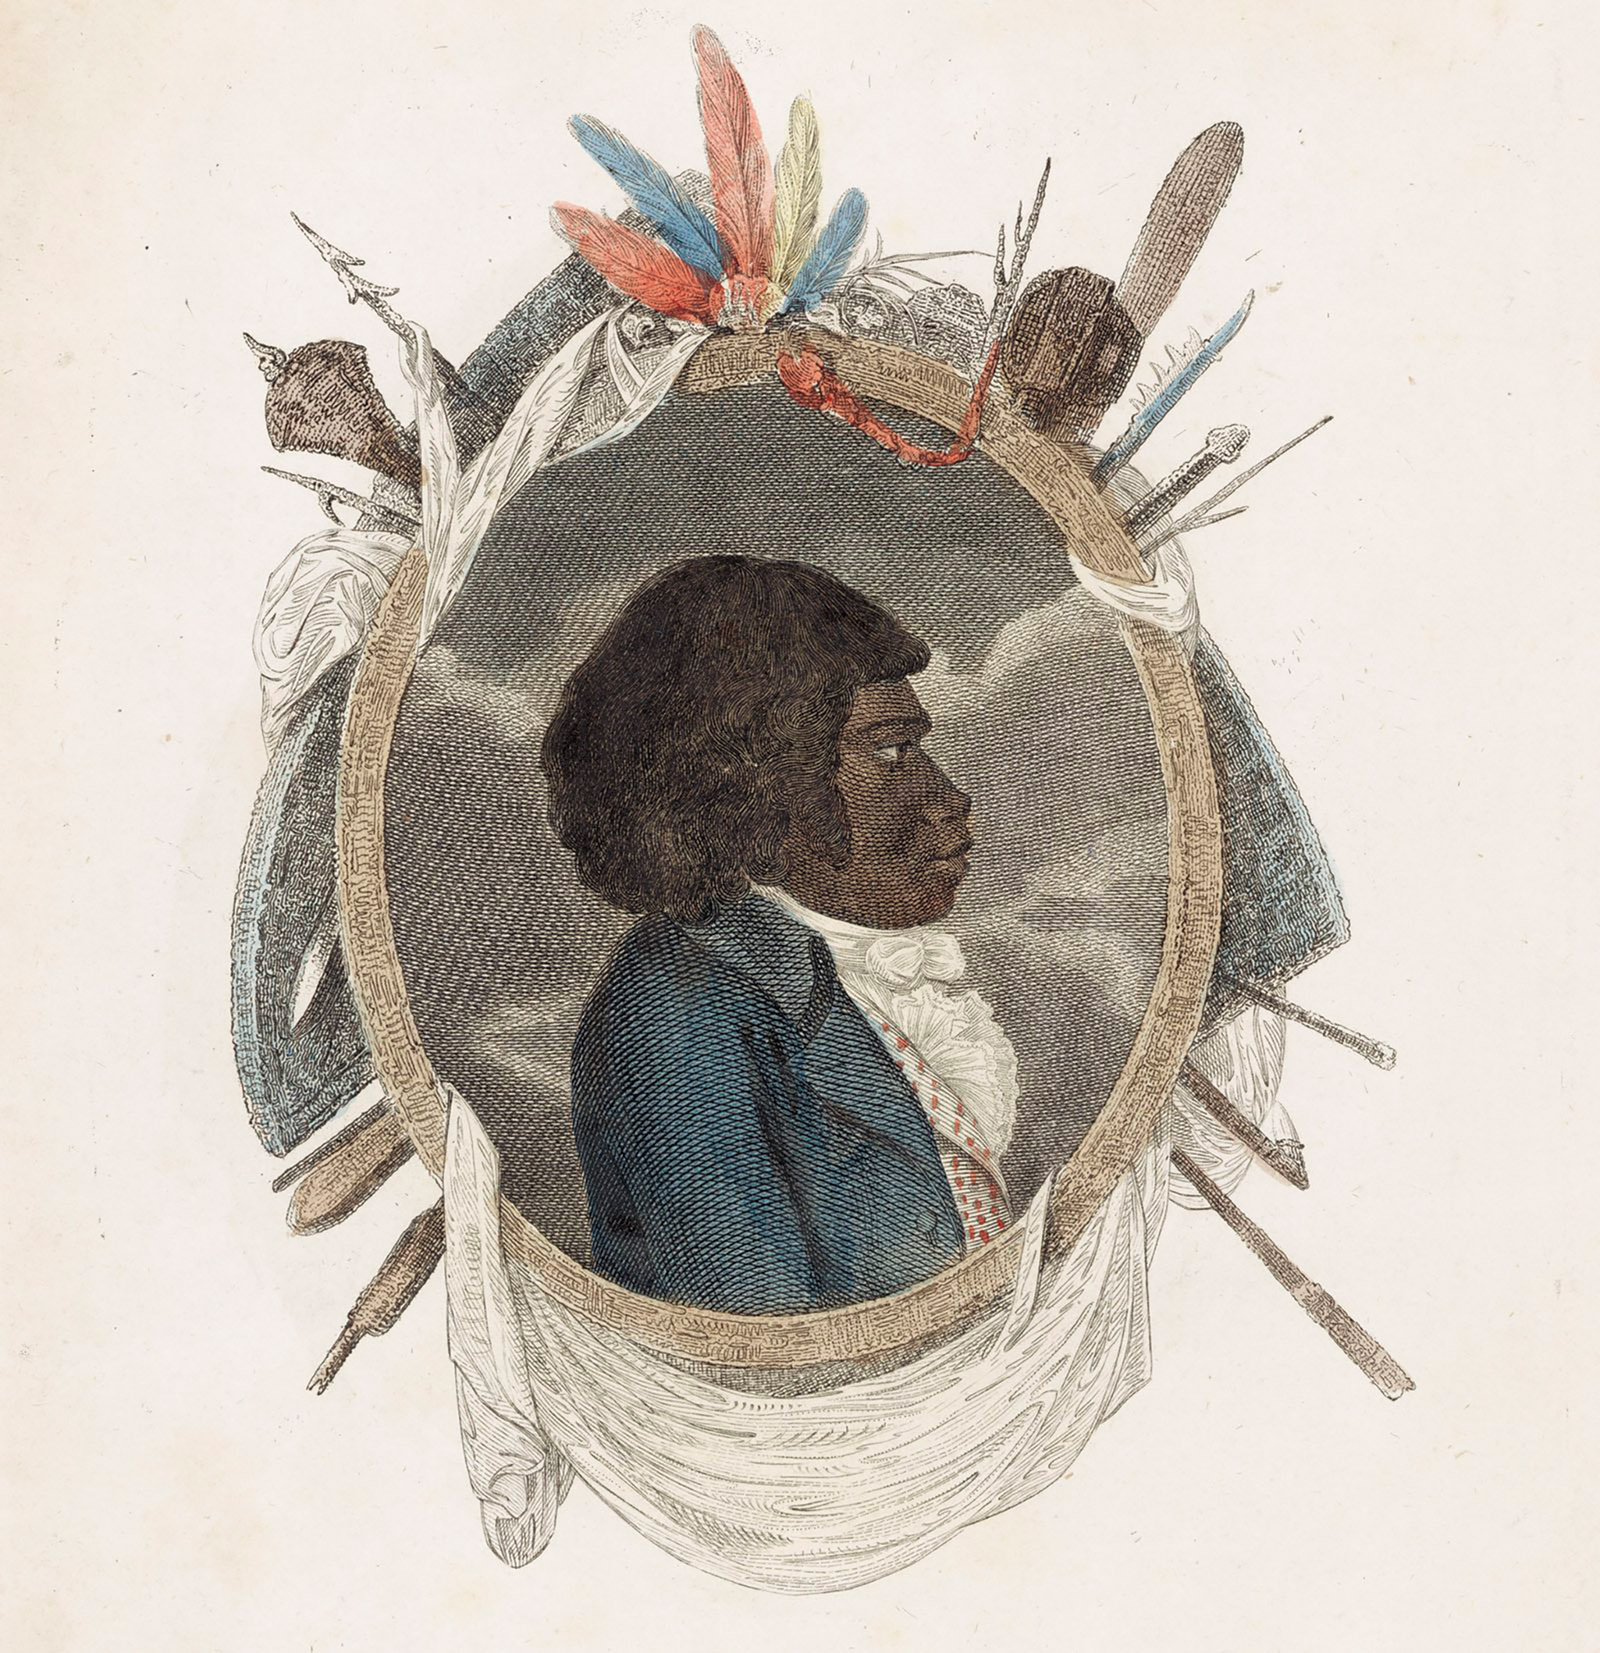 A portrait of Bennelong, an Aboriginal Australian who was kidnapped by British colonists